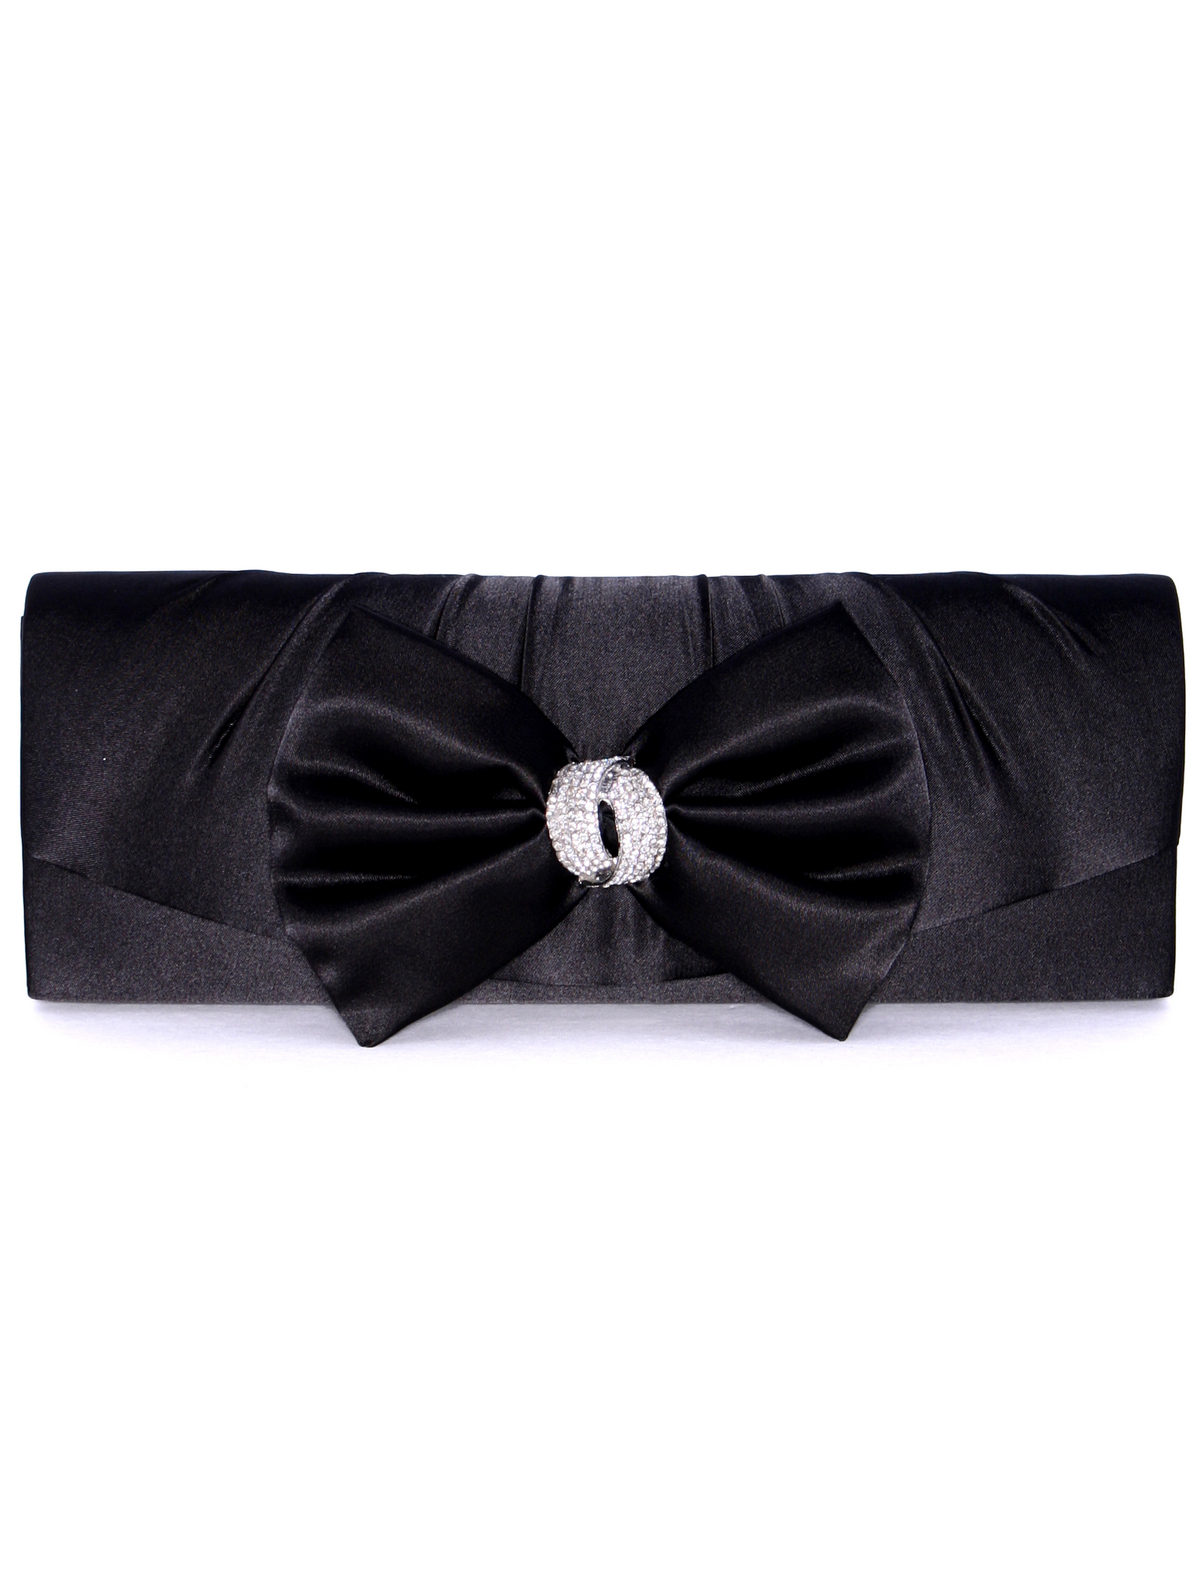 HBG92027 Black Satin Evening Bag with Bow - Front Image